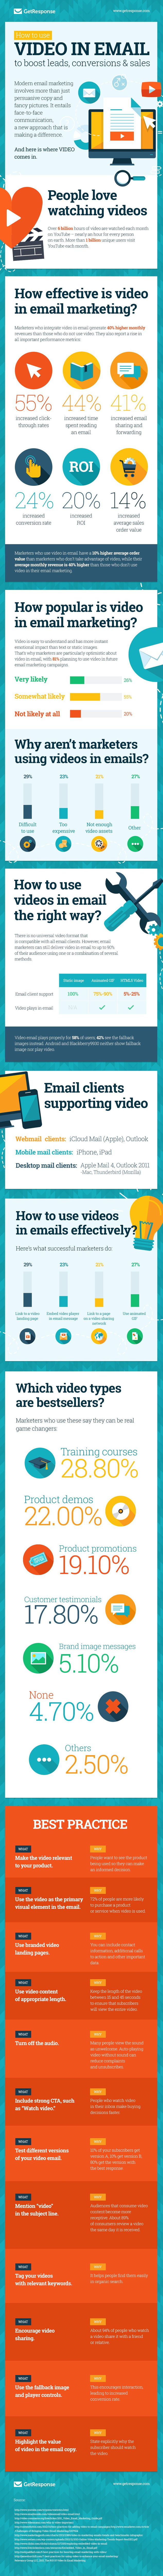 Video in Email y todo lo que necesitas http://socialmouths.com/blog/2014/07/08/video-in-email/